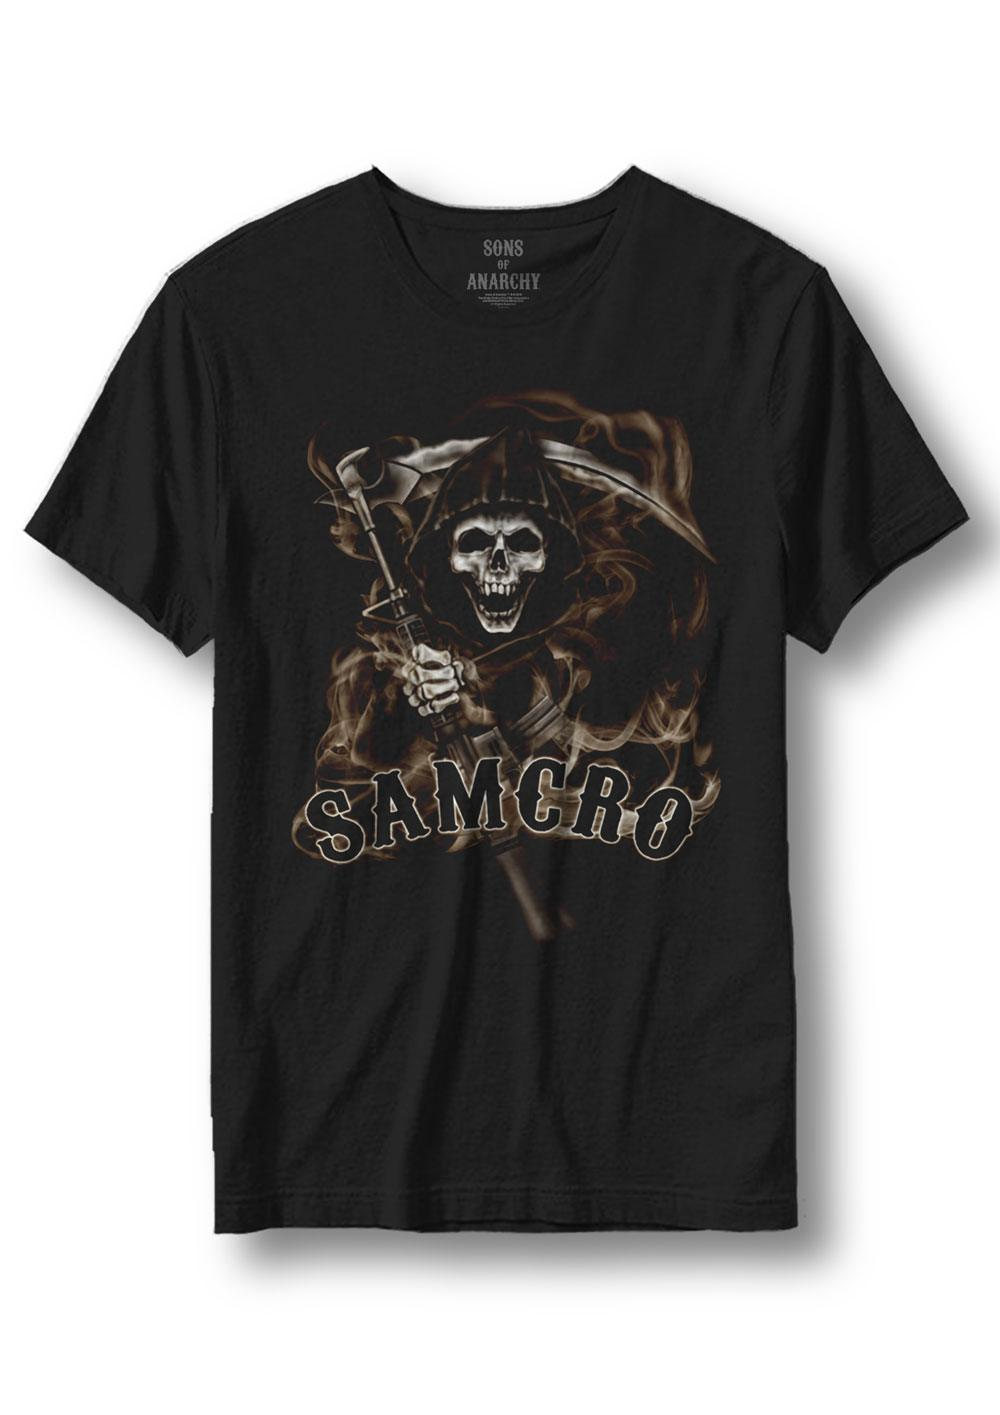 Sons of Anarchy T-Shirt Samcro Reaper Size L